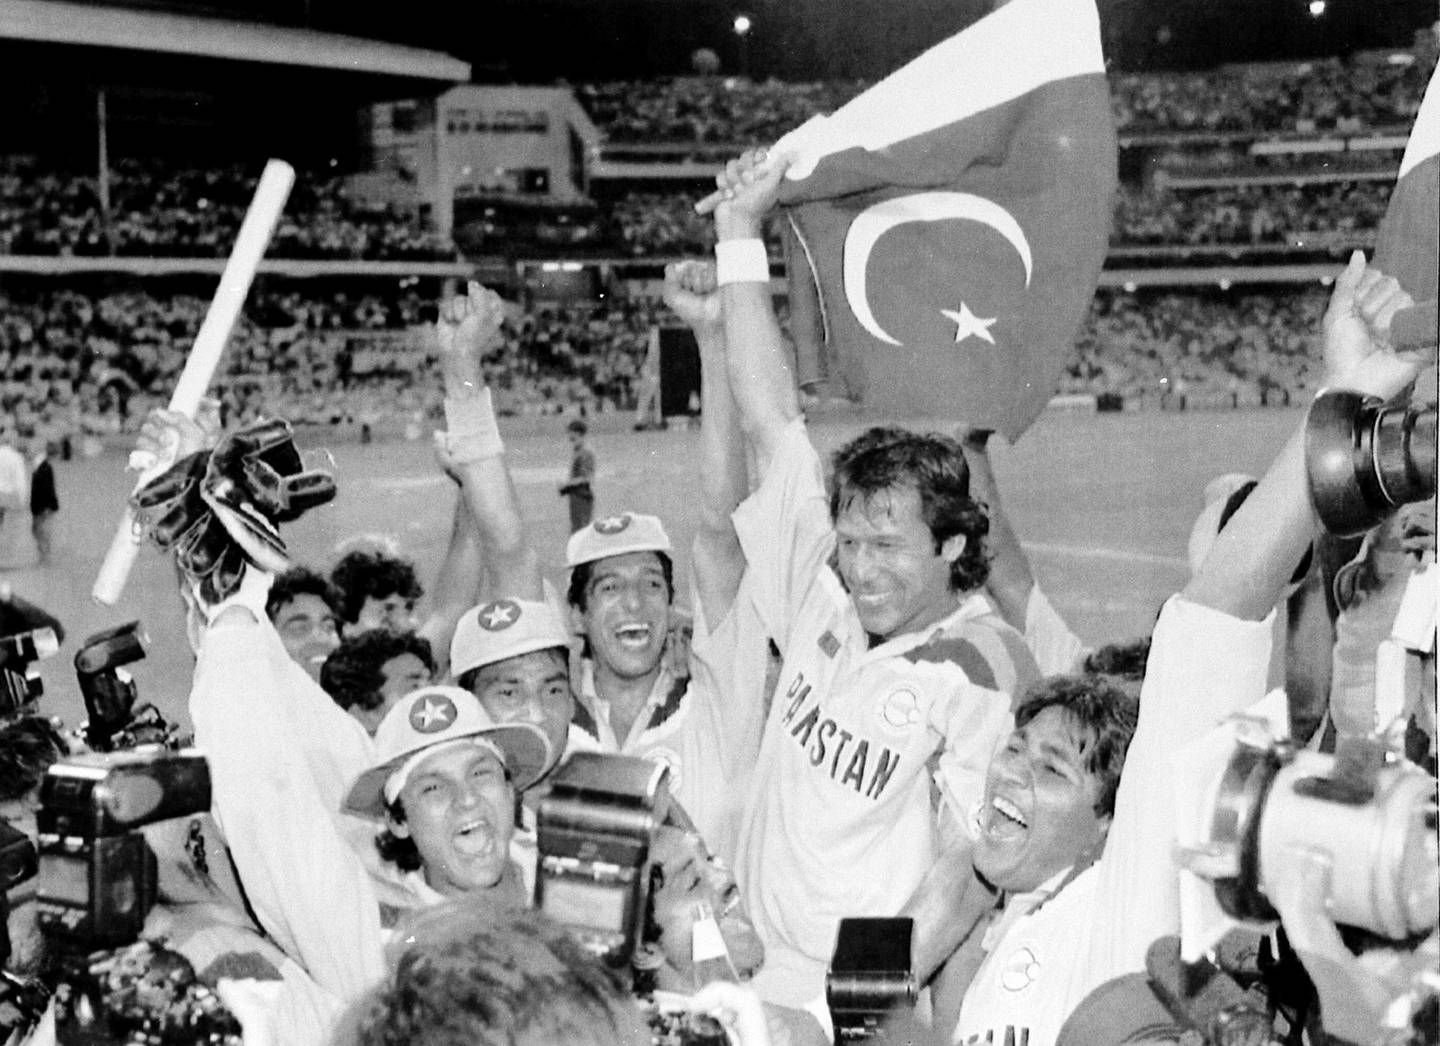 FILE - In this March 25, 1992 file photo, Pakistan's cricket captain Imran Khan, waving a Pakistan flag, is cheered by his teammates after Pakistan defeated England in the World Cup Cricket final, in Melbourne, Australia. On Thursday July 26, 2018, Khan's political party, Tehreek-e-Insaf (Movement of Justice), took a commanding lead in the Pakistan general election and he was set to become the first international cricketer in the world to be elected as a country's prime minister, considered the second toughest job in Pakistan. (AP Photo/Steve Holland, File)